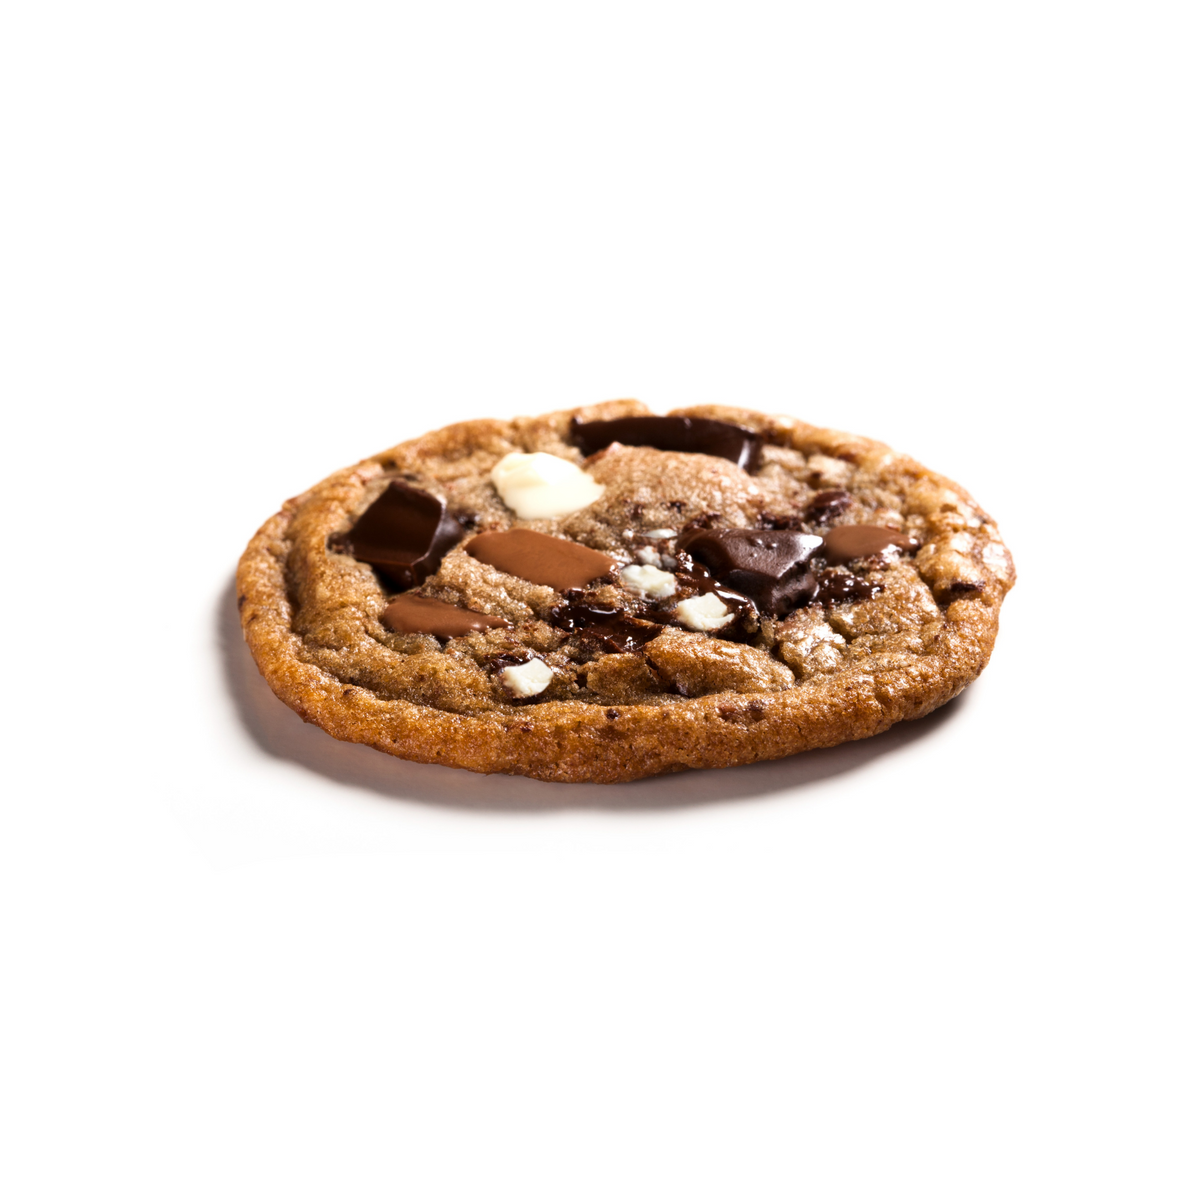 Ménage à Trois® Tin filled with Triple Chocolate chunk cookies